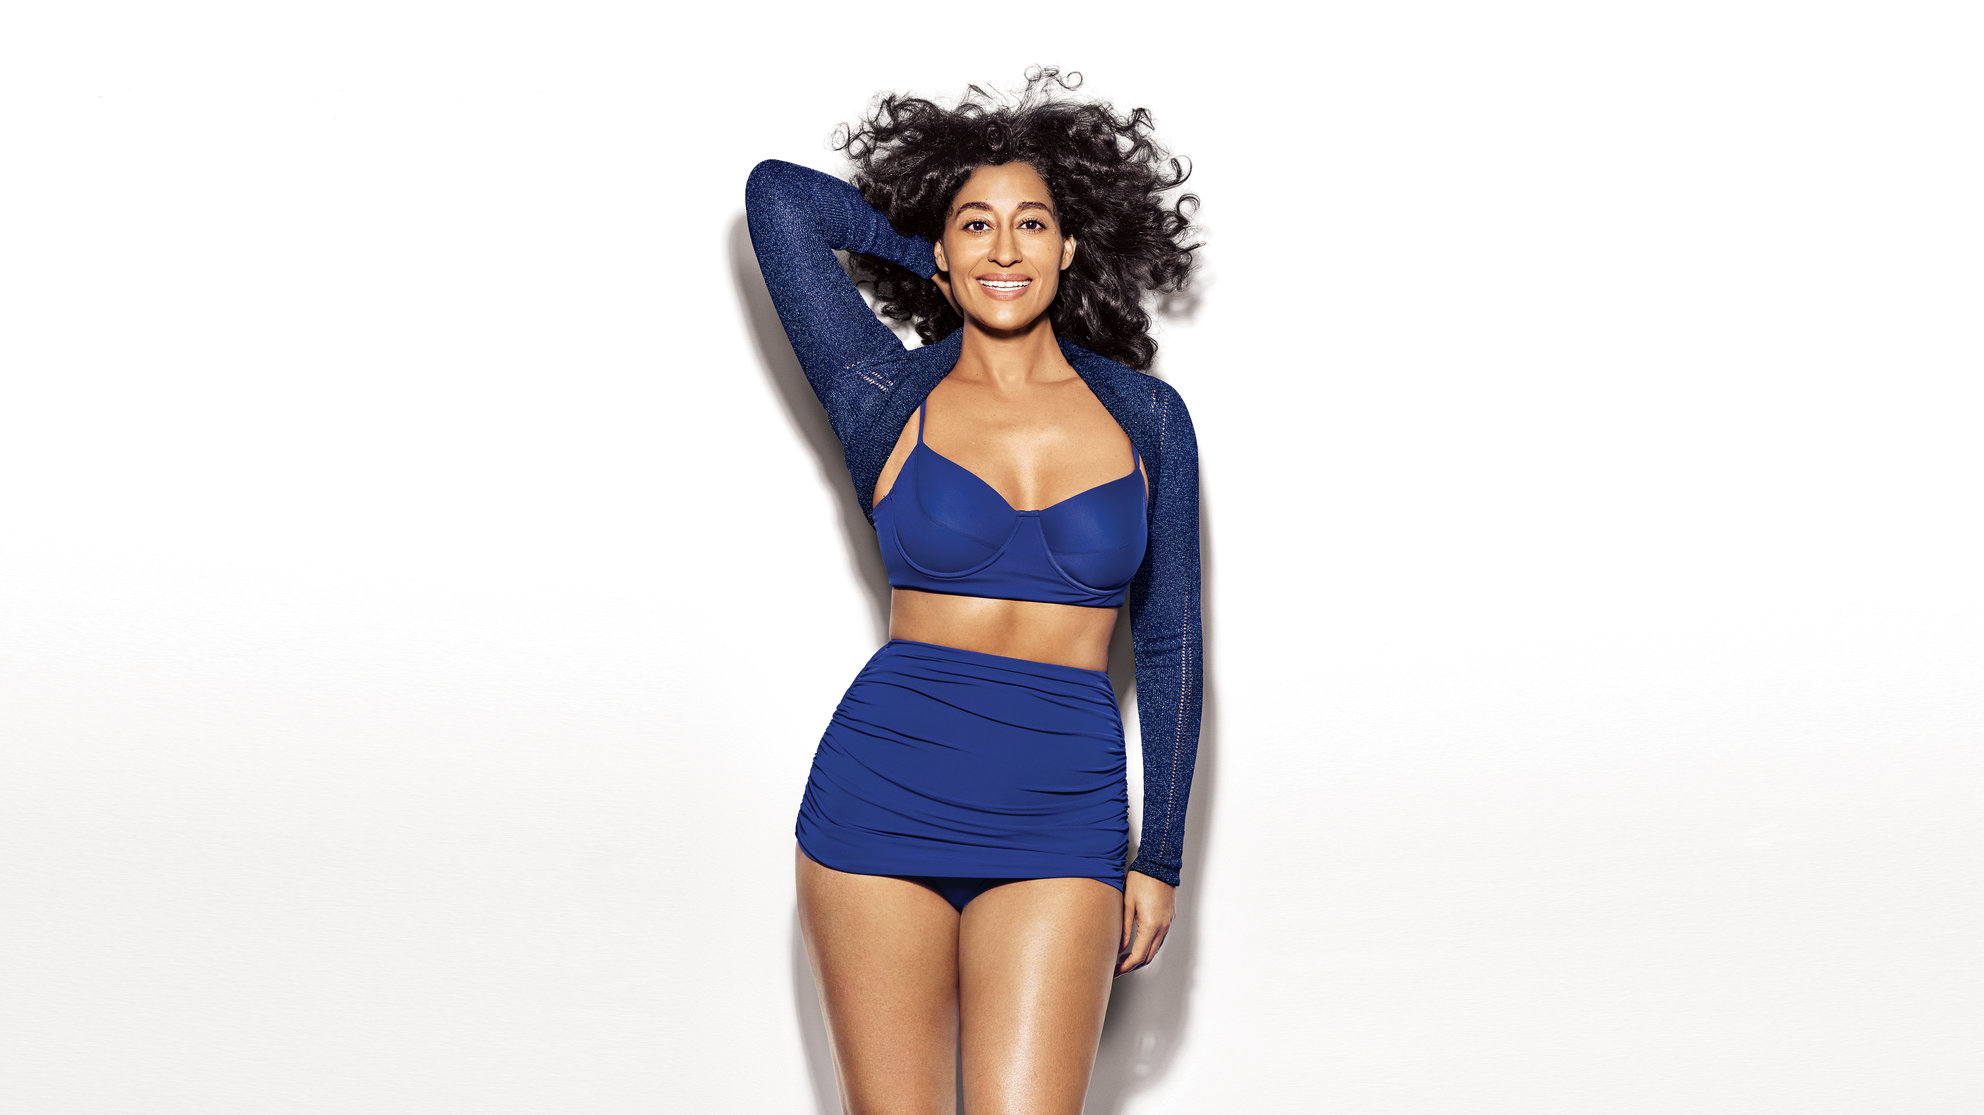 Tracee ellis ross ass in tight dress 2